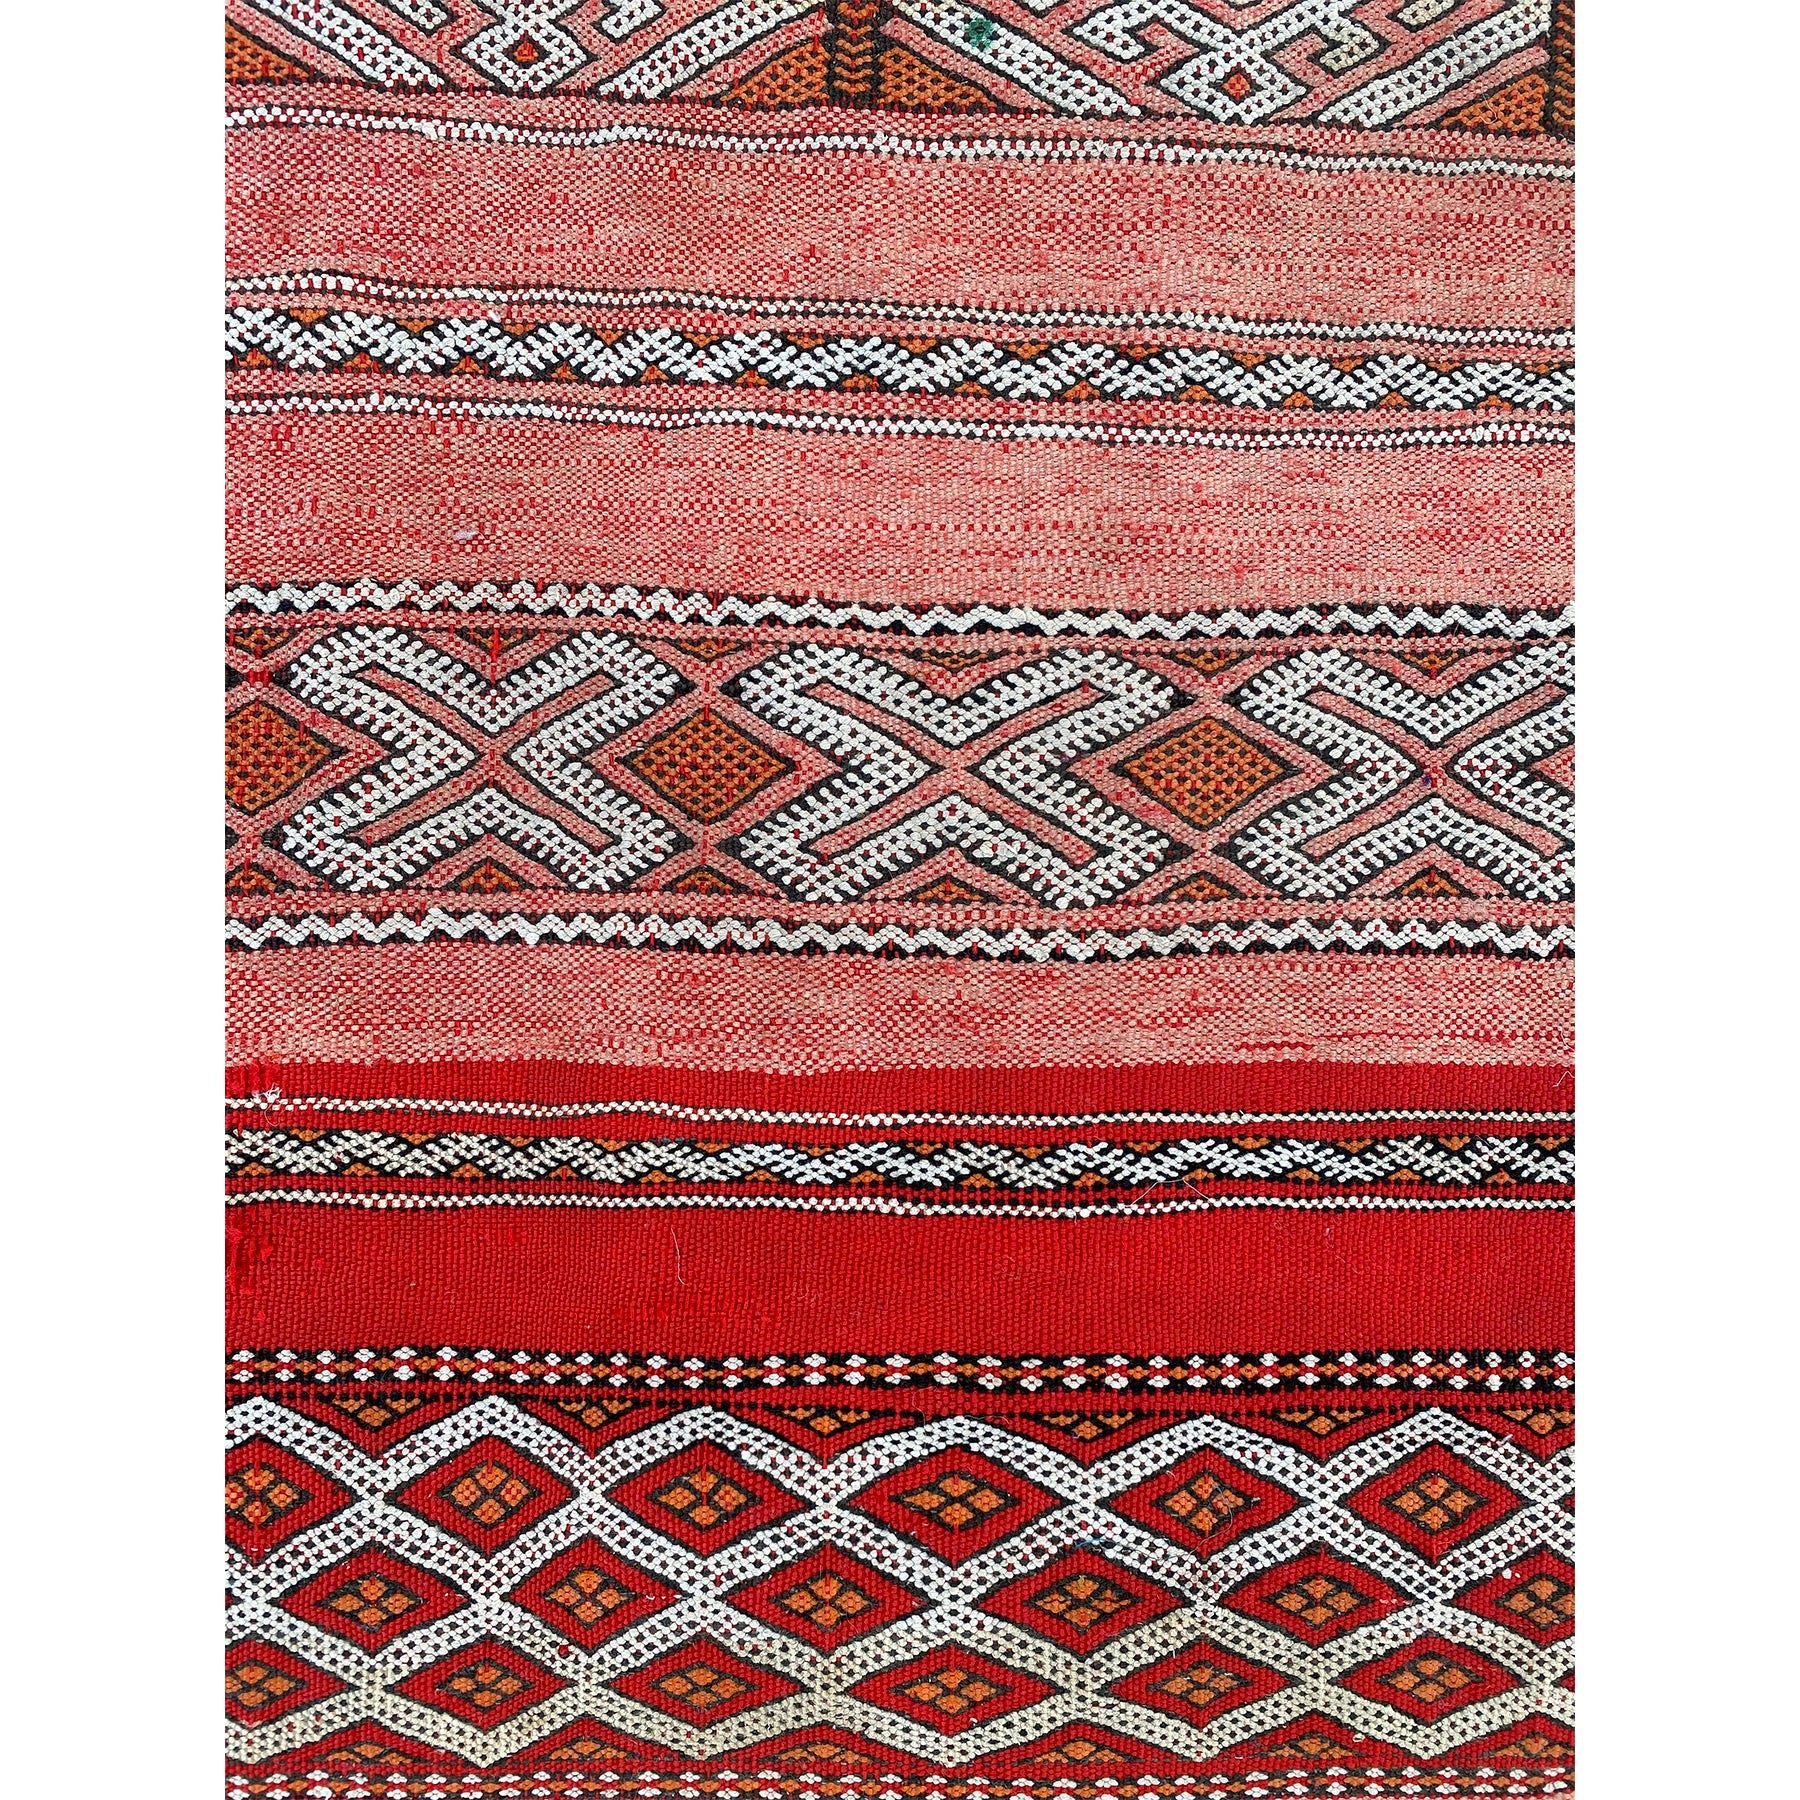 Faded red vintage Moroccan kilim rug with tribal pattern design - Kantara | Moroccan Rugs